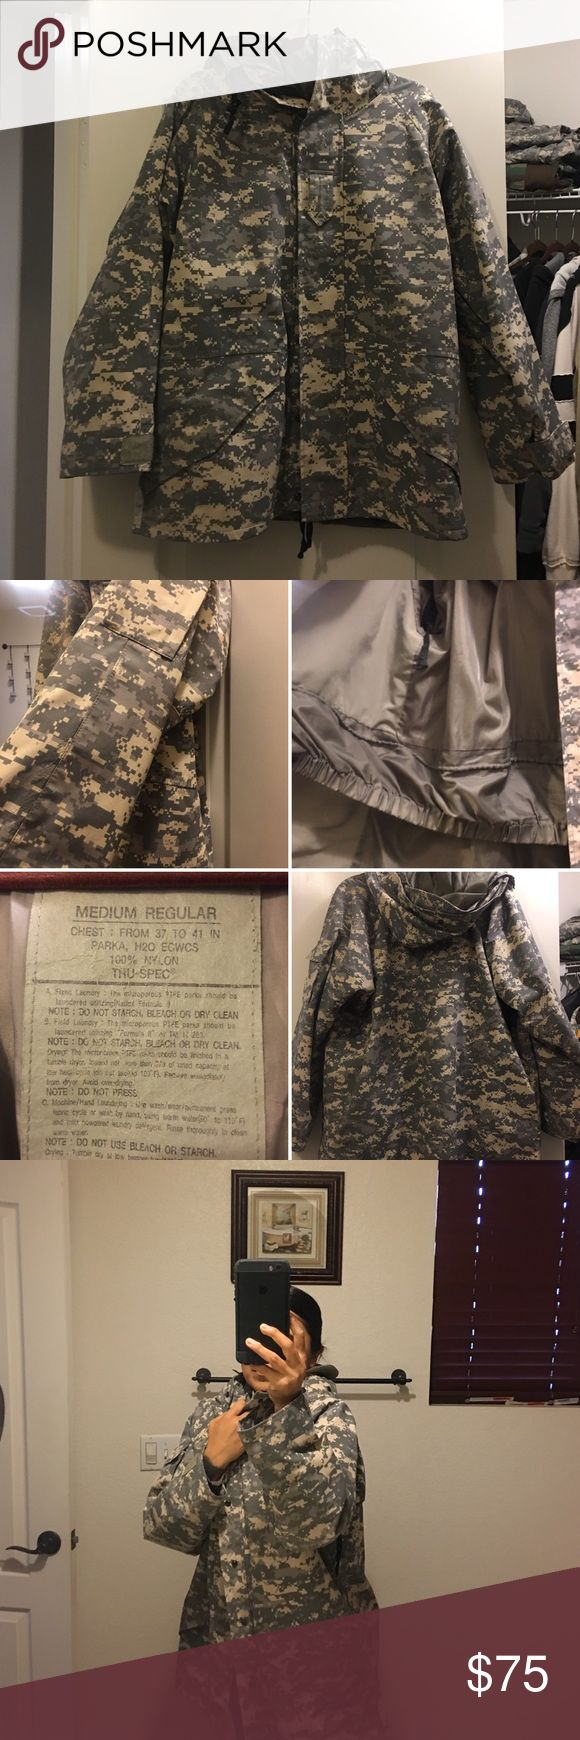 """Used Tru Spec Army Issue ACU jacket Used Unisex Med-Reg Army wet weather parka. Making room for my new OCP uniforms. No tears. Many pockets and has kept me warm and dry. Mixed of Velcro -and snap on pockets. The micro fleece liner is NOT included since it has a tear inside the sleeve. Not noticeable but will include upon request no charge but do NOT rate me based on the liner since I said I wasn't going to include it. Needs to be sewn. Can be for male or female. I'm 5-1"""" and 130 for…"""